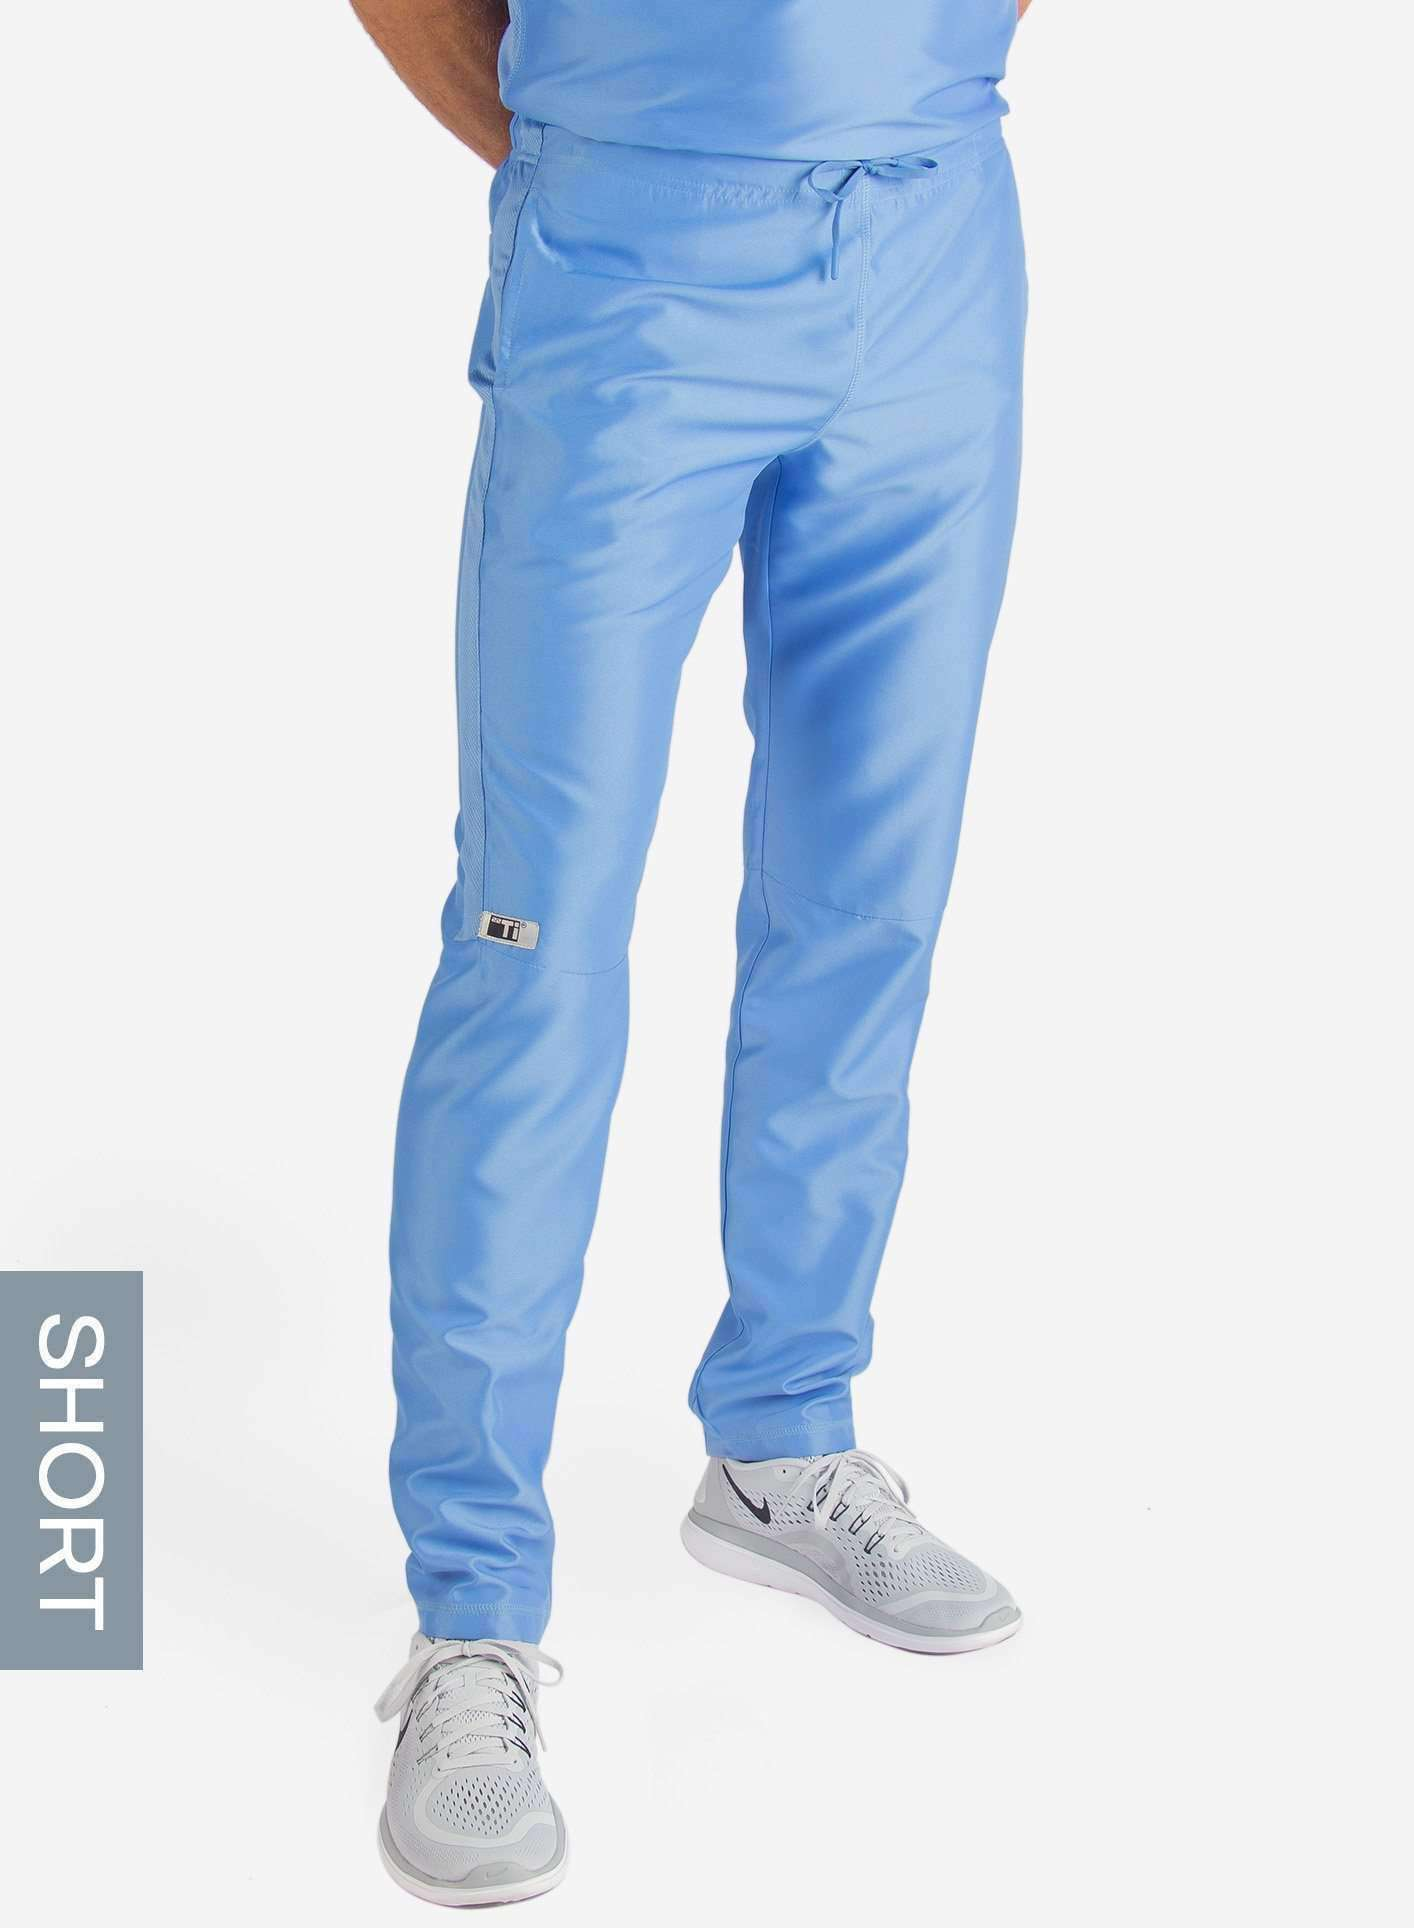 Men's Short Slim Fit Scrub Pants in Ceil Blue